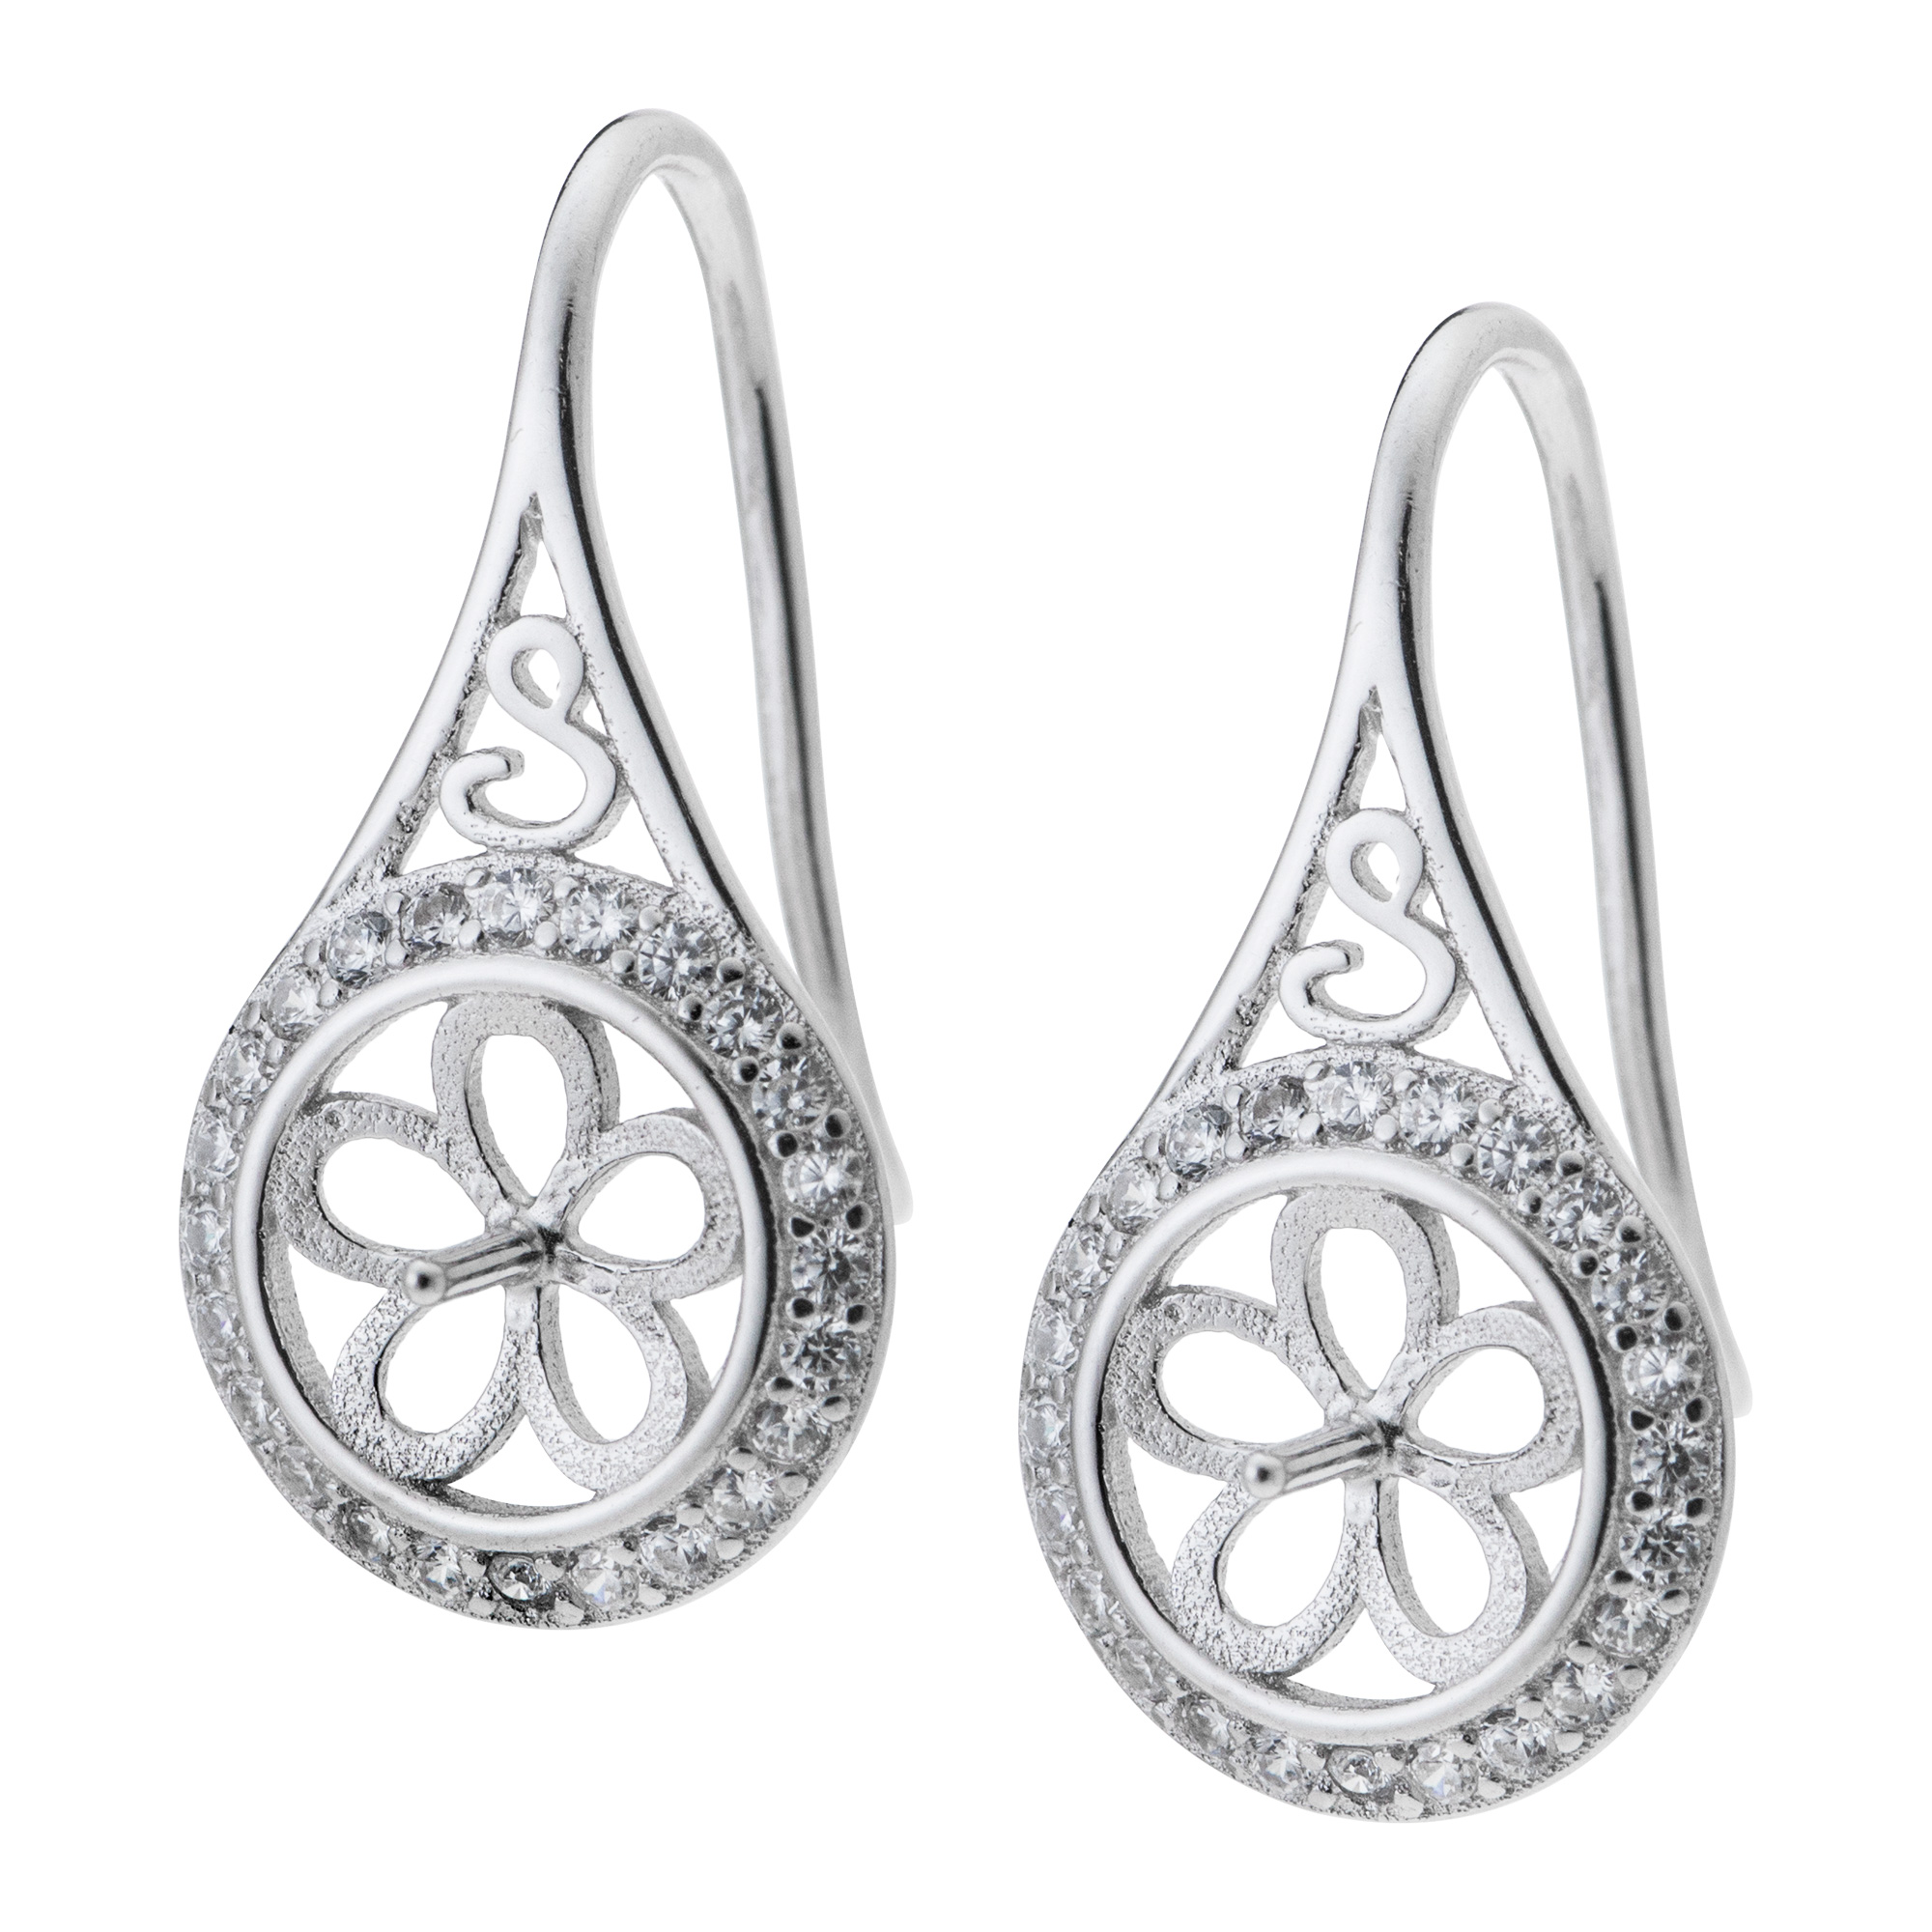 2x Rhodium on Sterling Silver Teardrop Filigree Flower CZ Pearl Earwire Hook Earring Connector